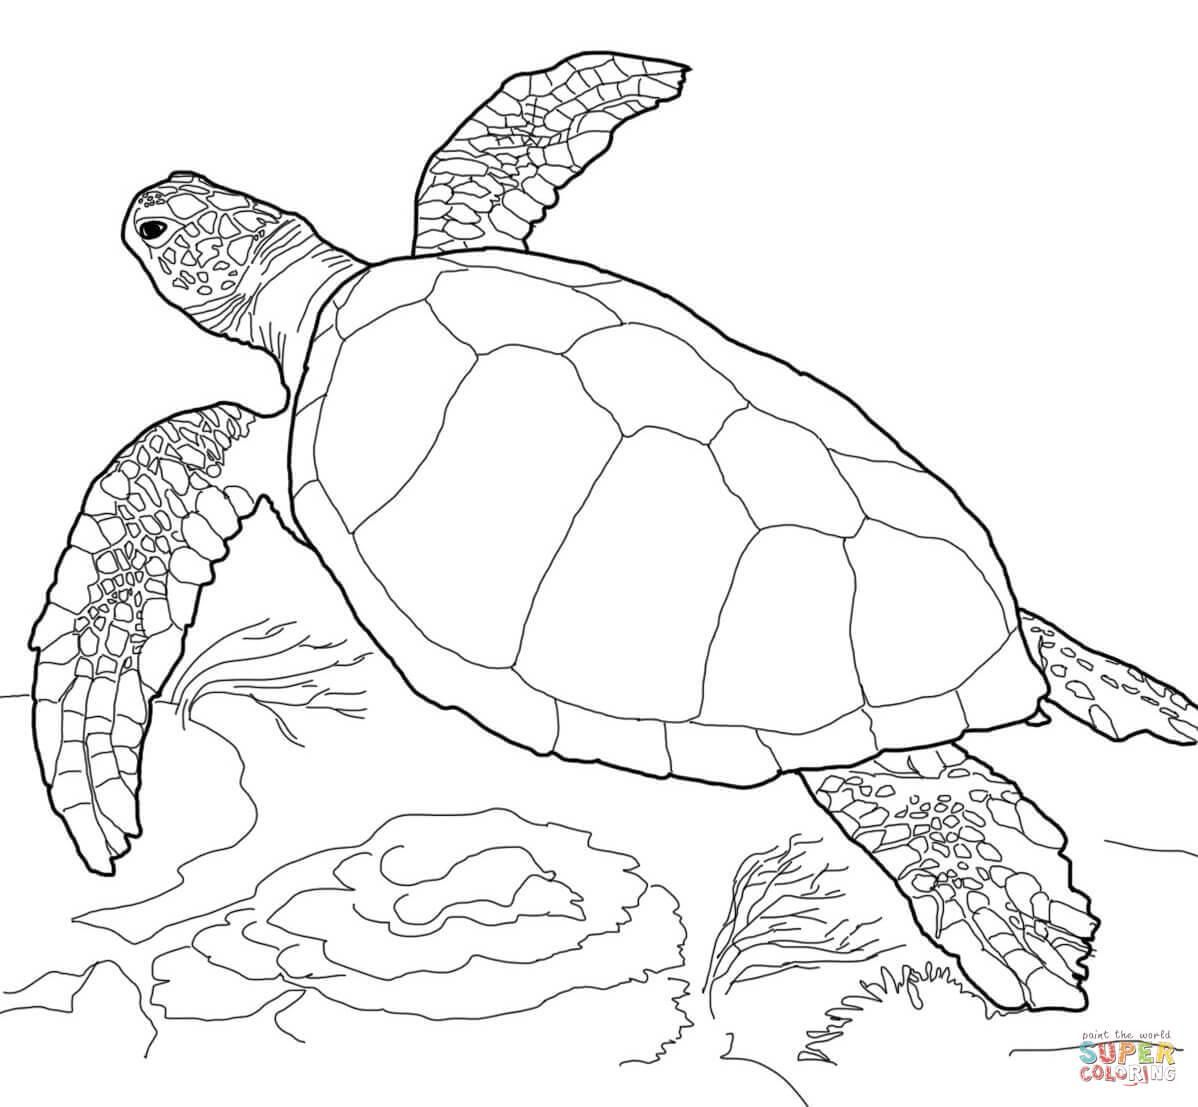 42 Coloring Page About Turtle Turtle Coloring Pages Sea Turtle Drawing Turtle Drawing